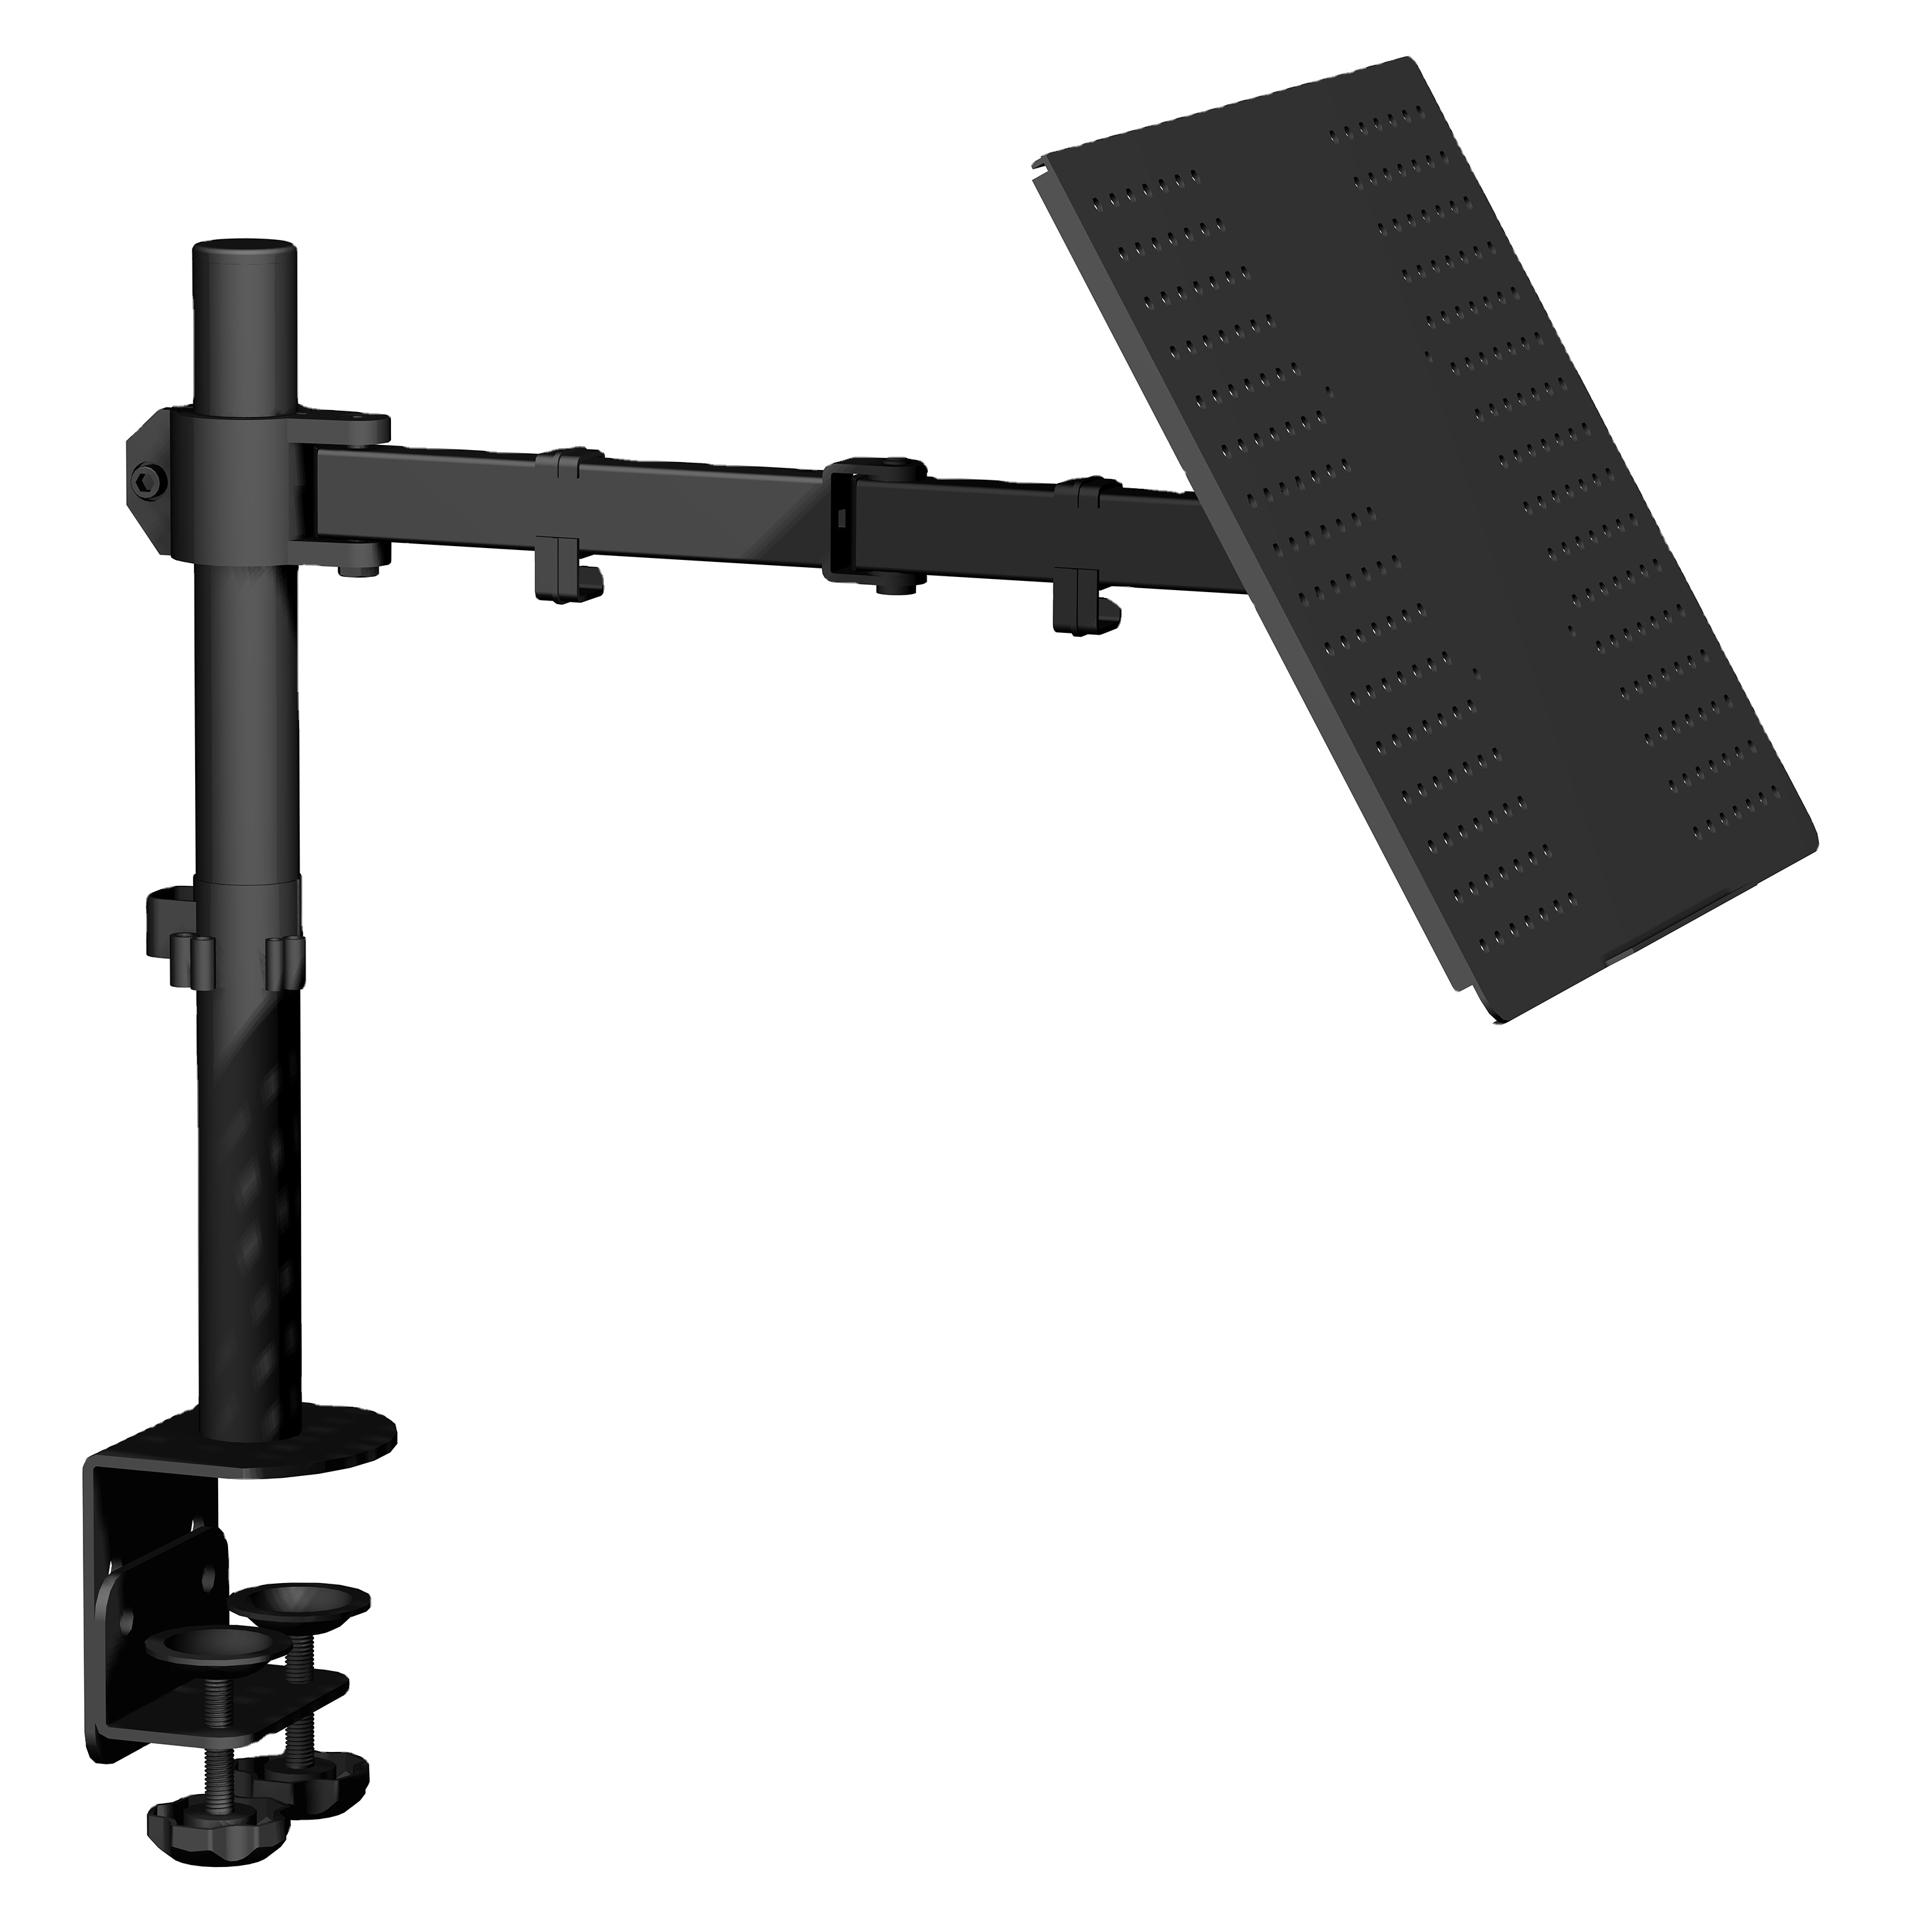 Hot selling Adjustable Single Lcd Monitor Mount Arm with Laptop Notebook Adaptor